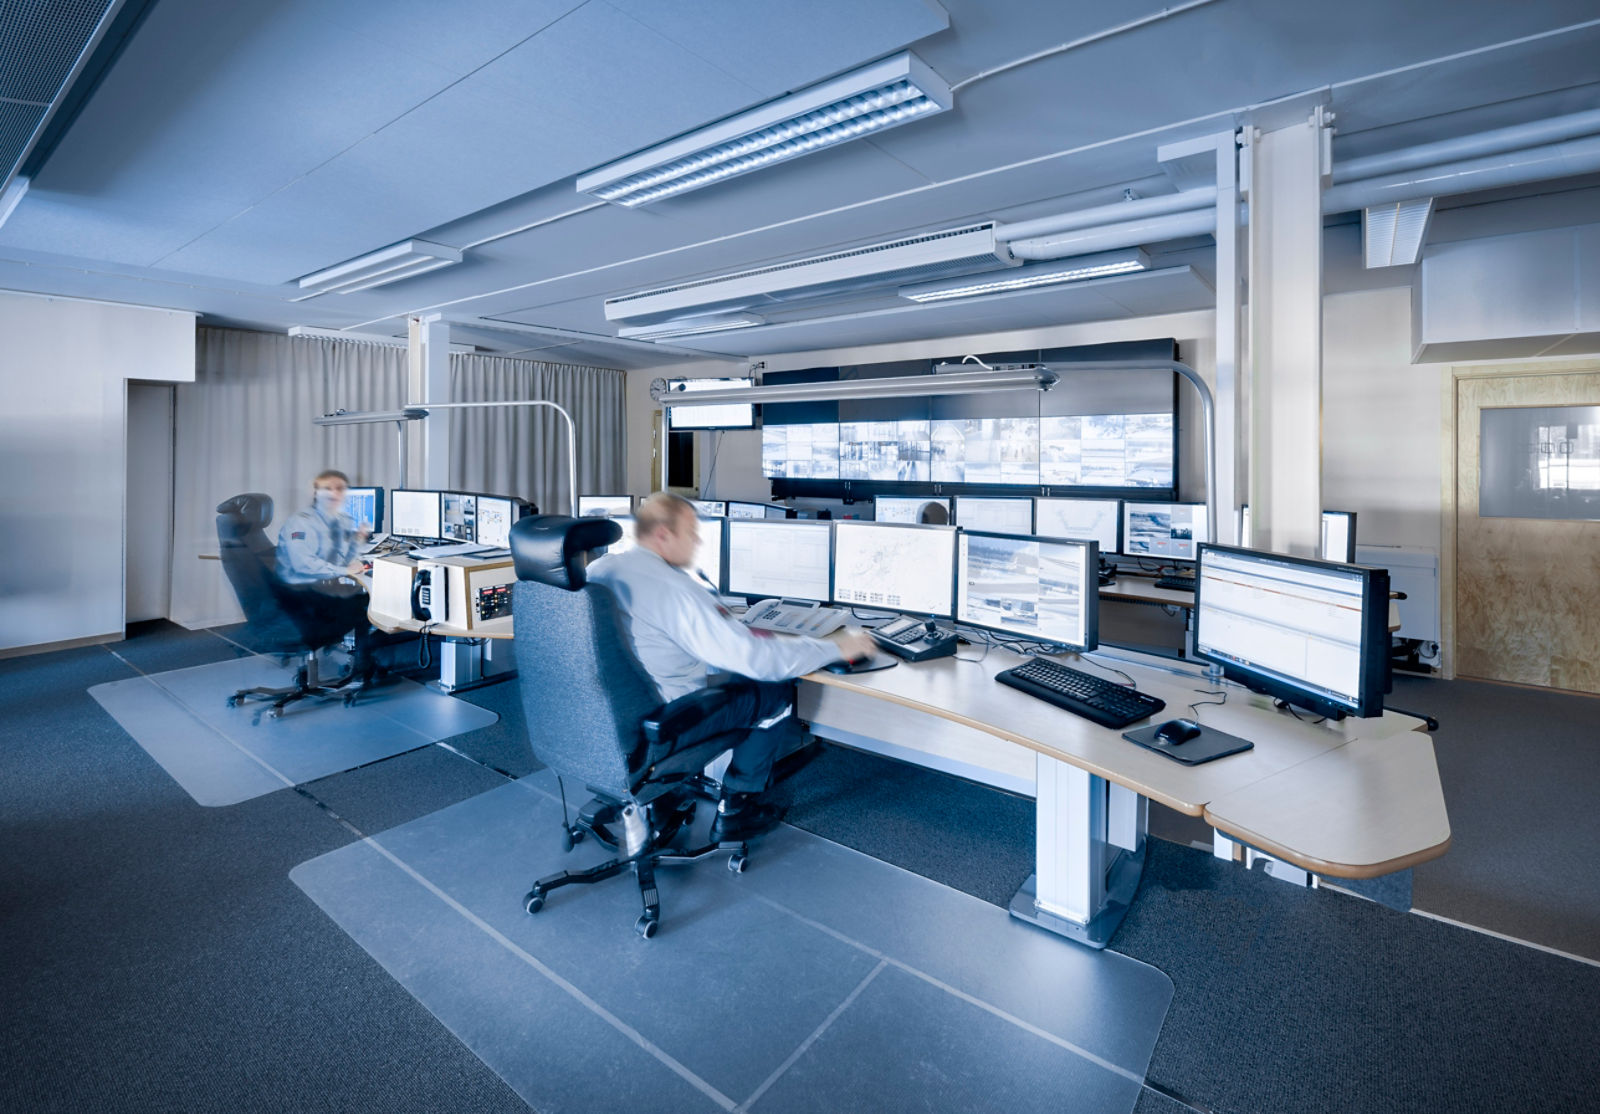 Saab airport security control room